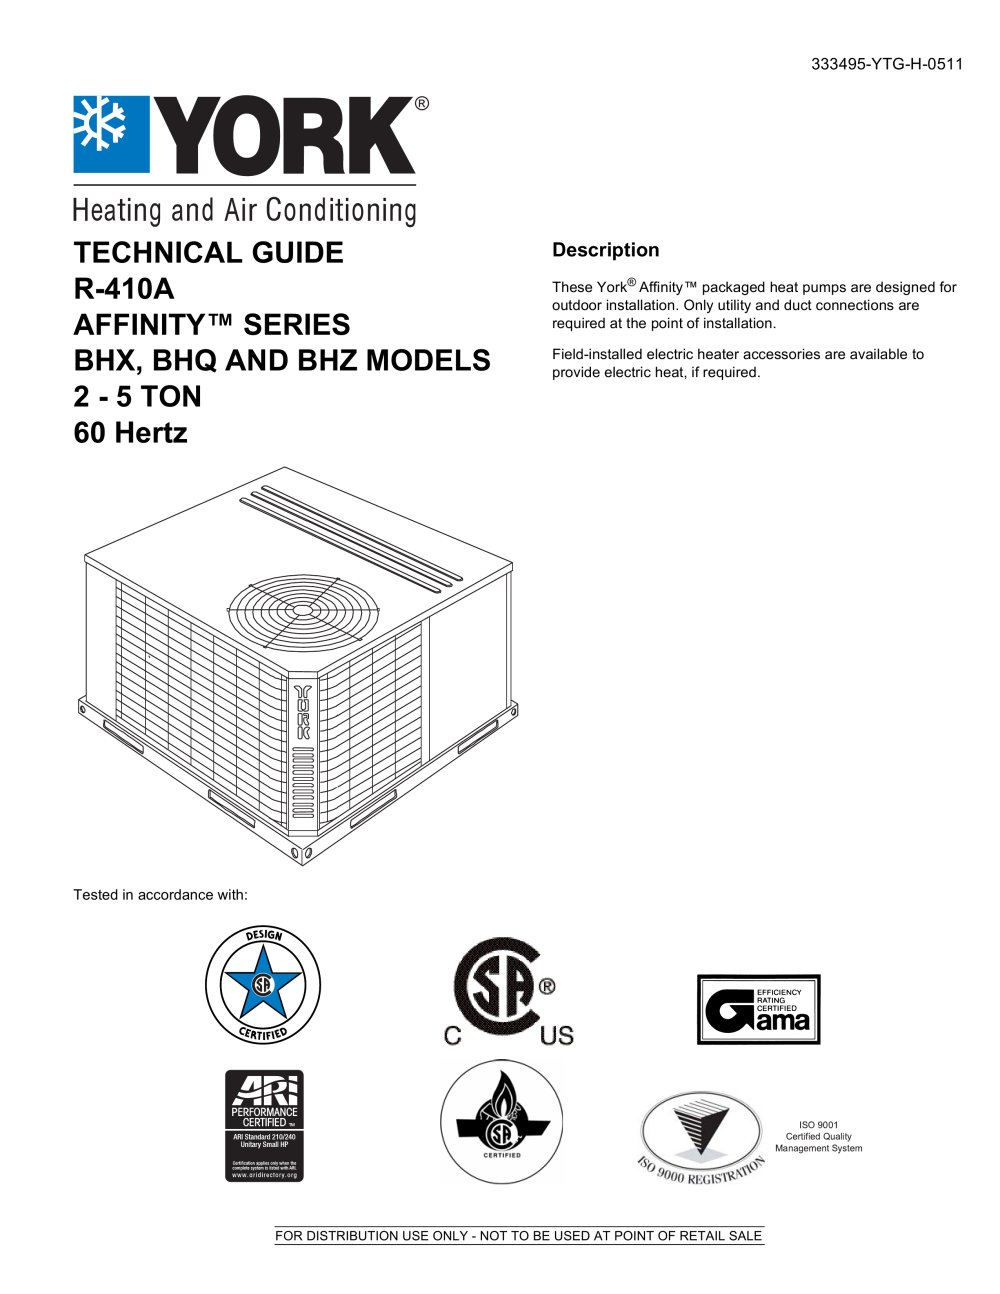 York Affinity Furnace Wiring Diagram Gas Schematic 8 S Circuit